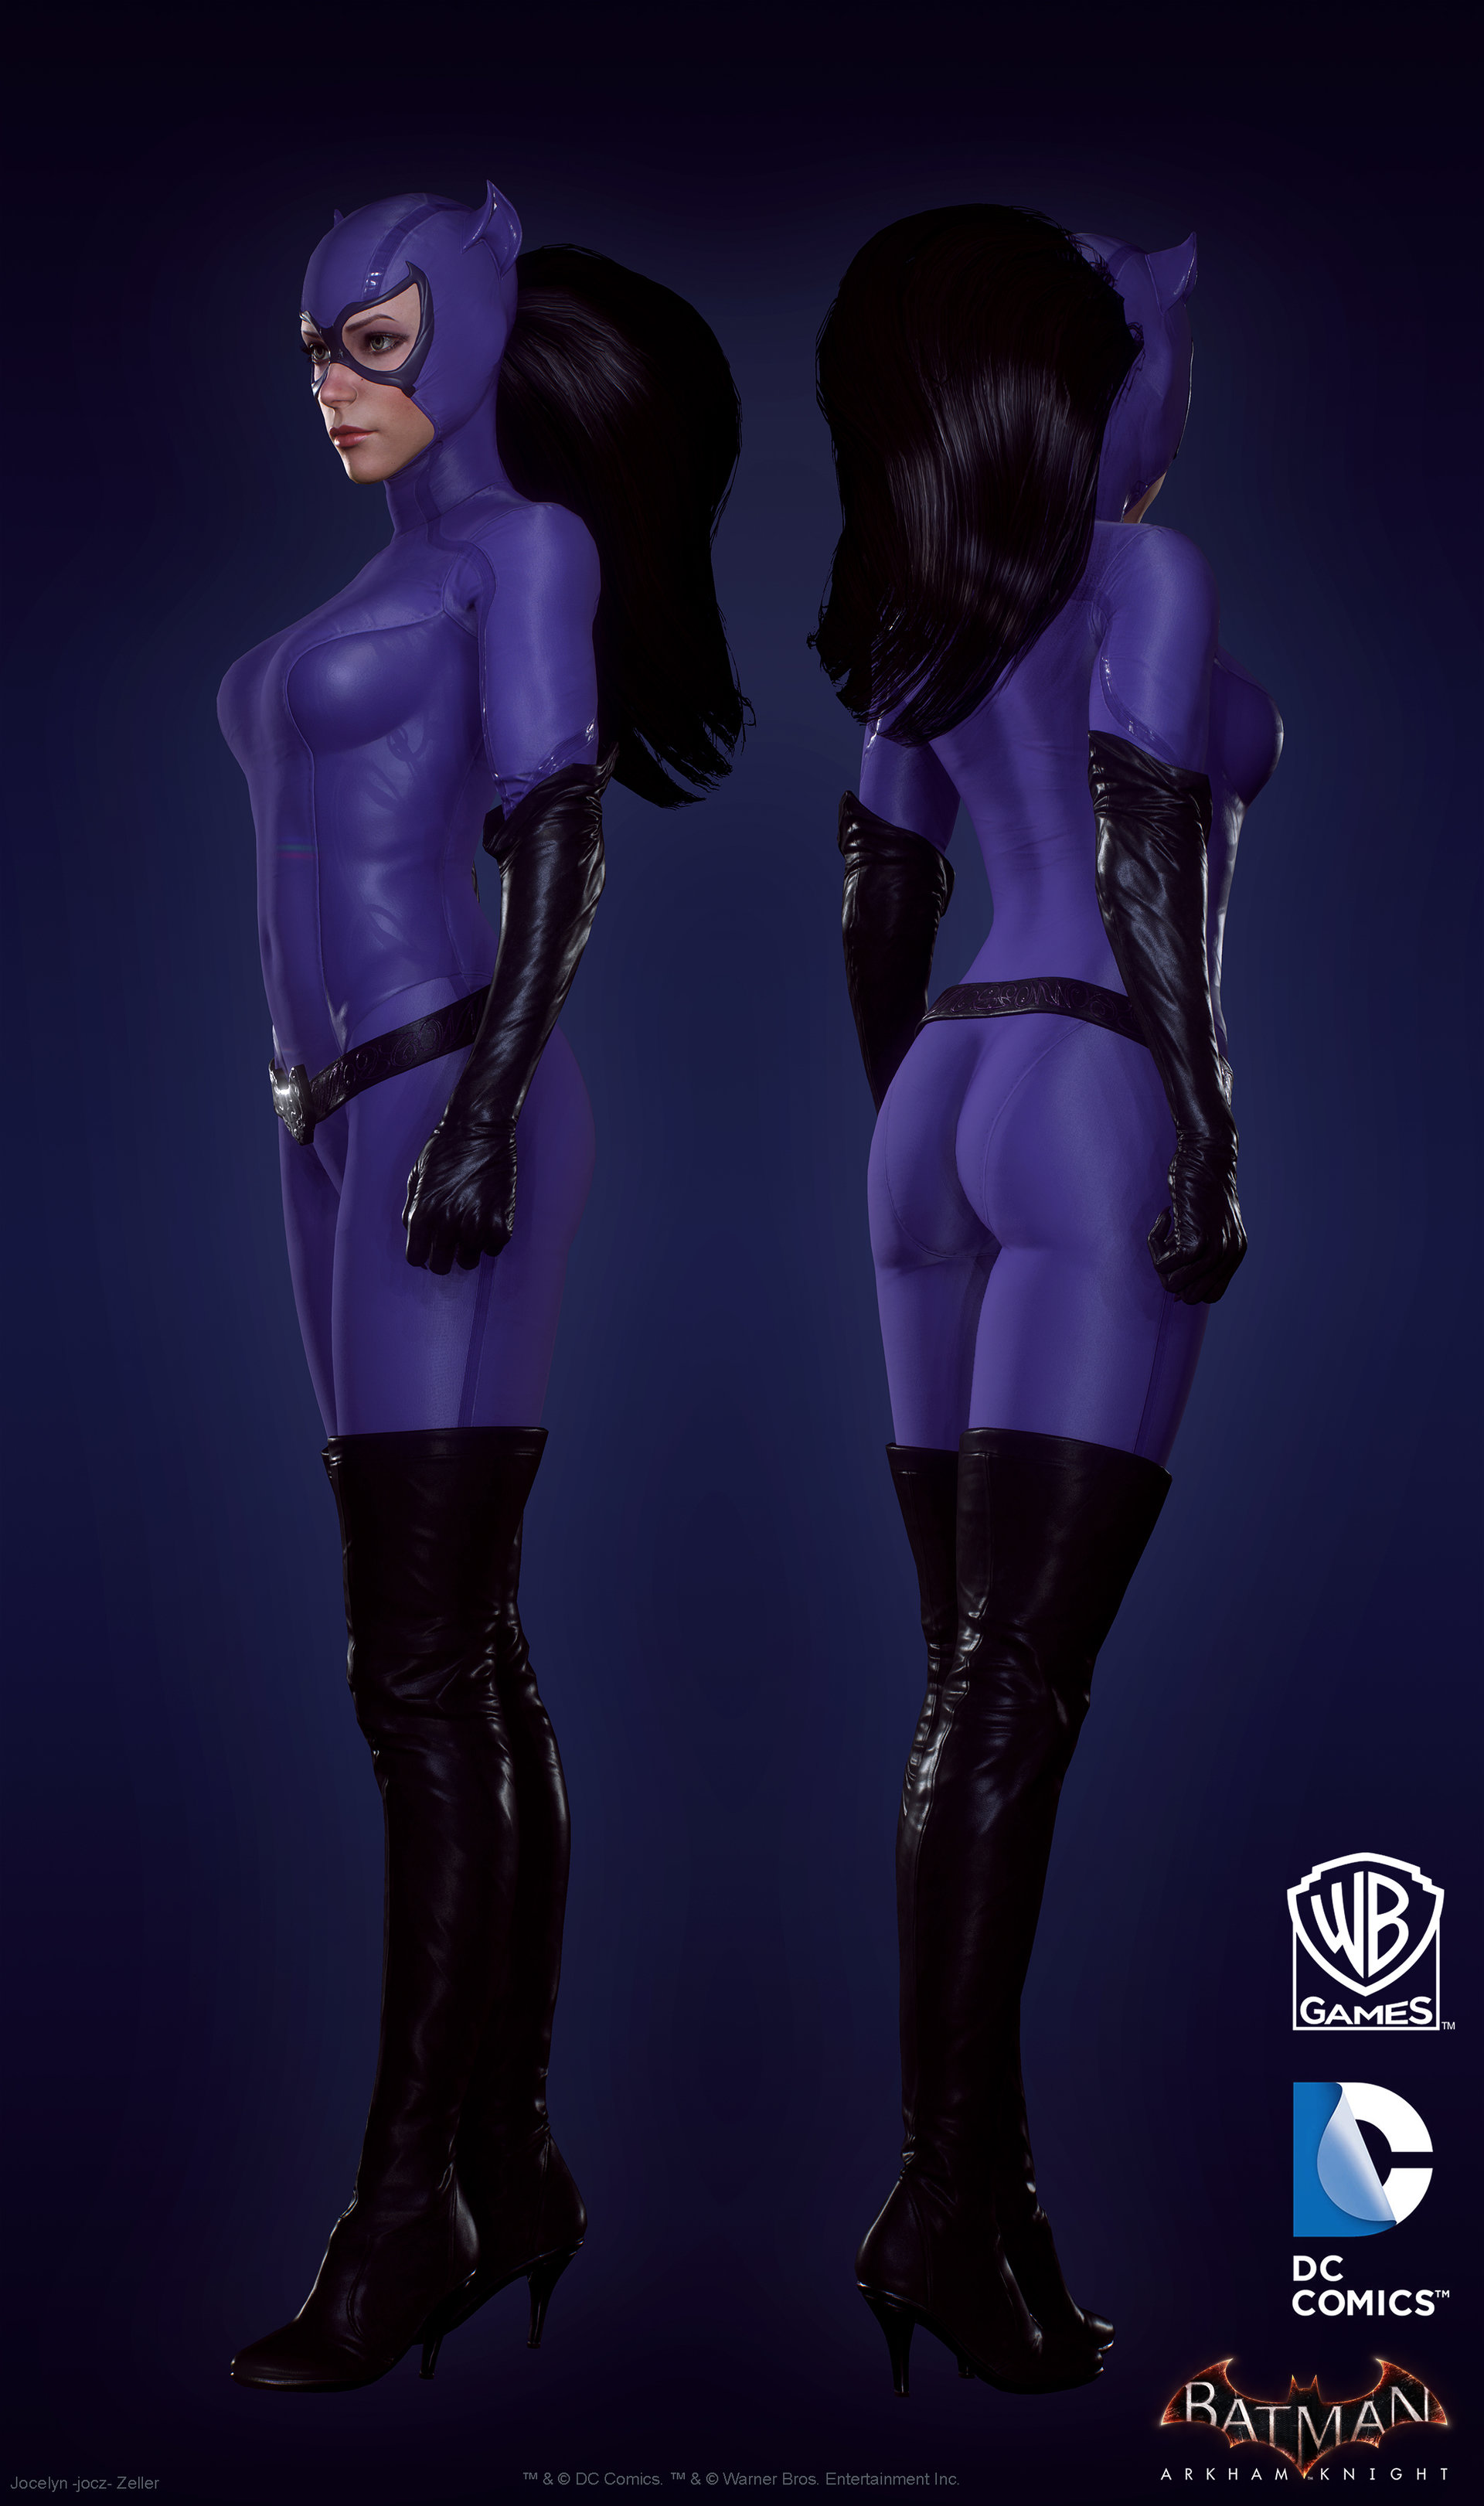 Arkham catwoman sex naked videos